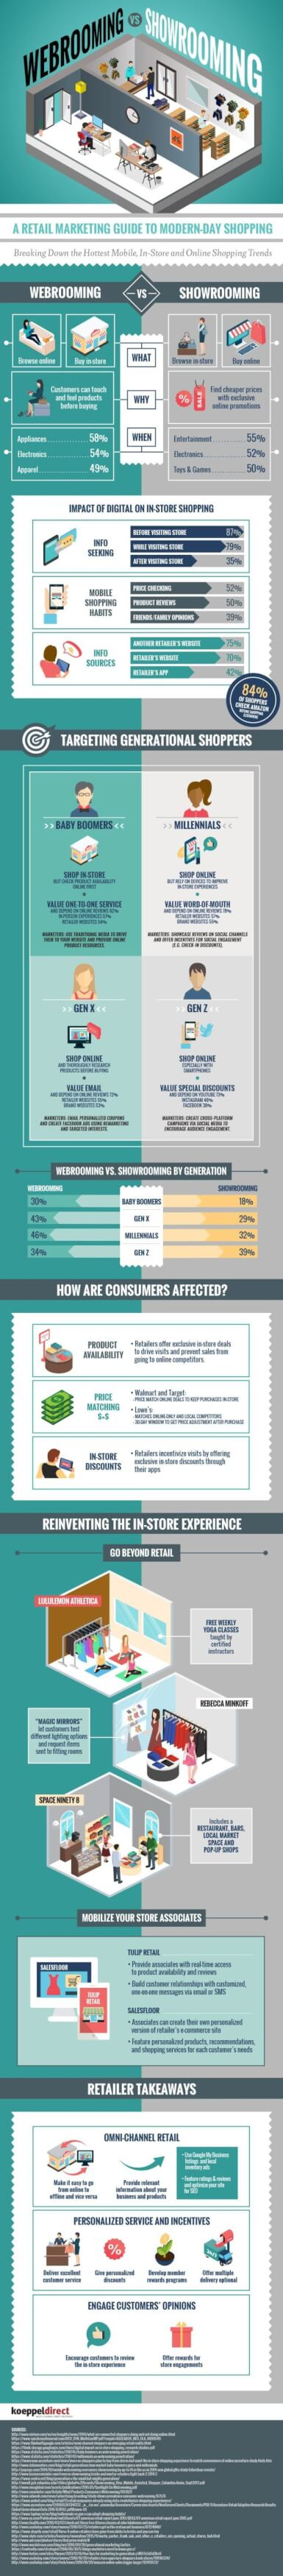 What is Webrooming? How is it Different from Showrooming? [Infographic]